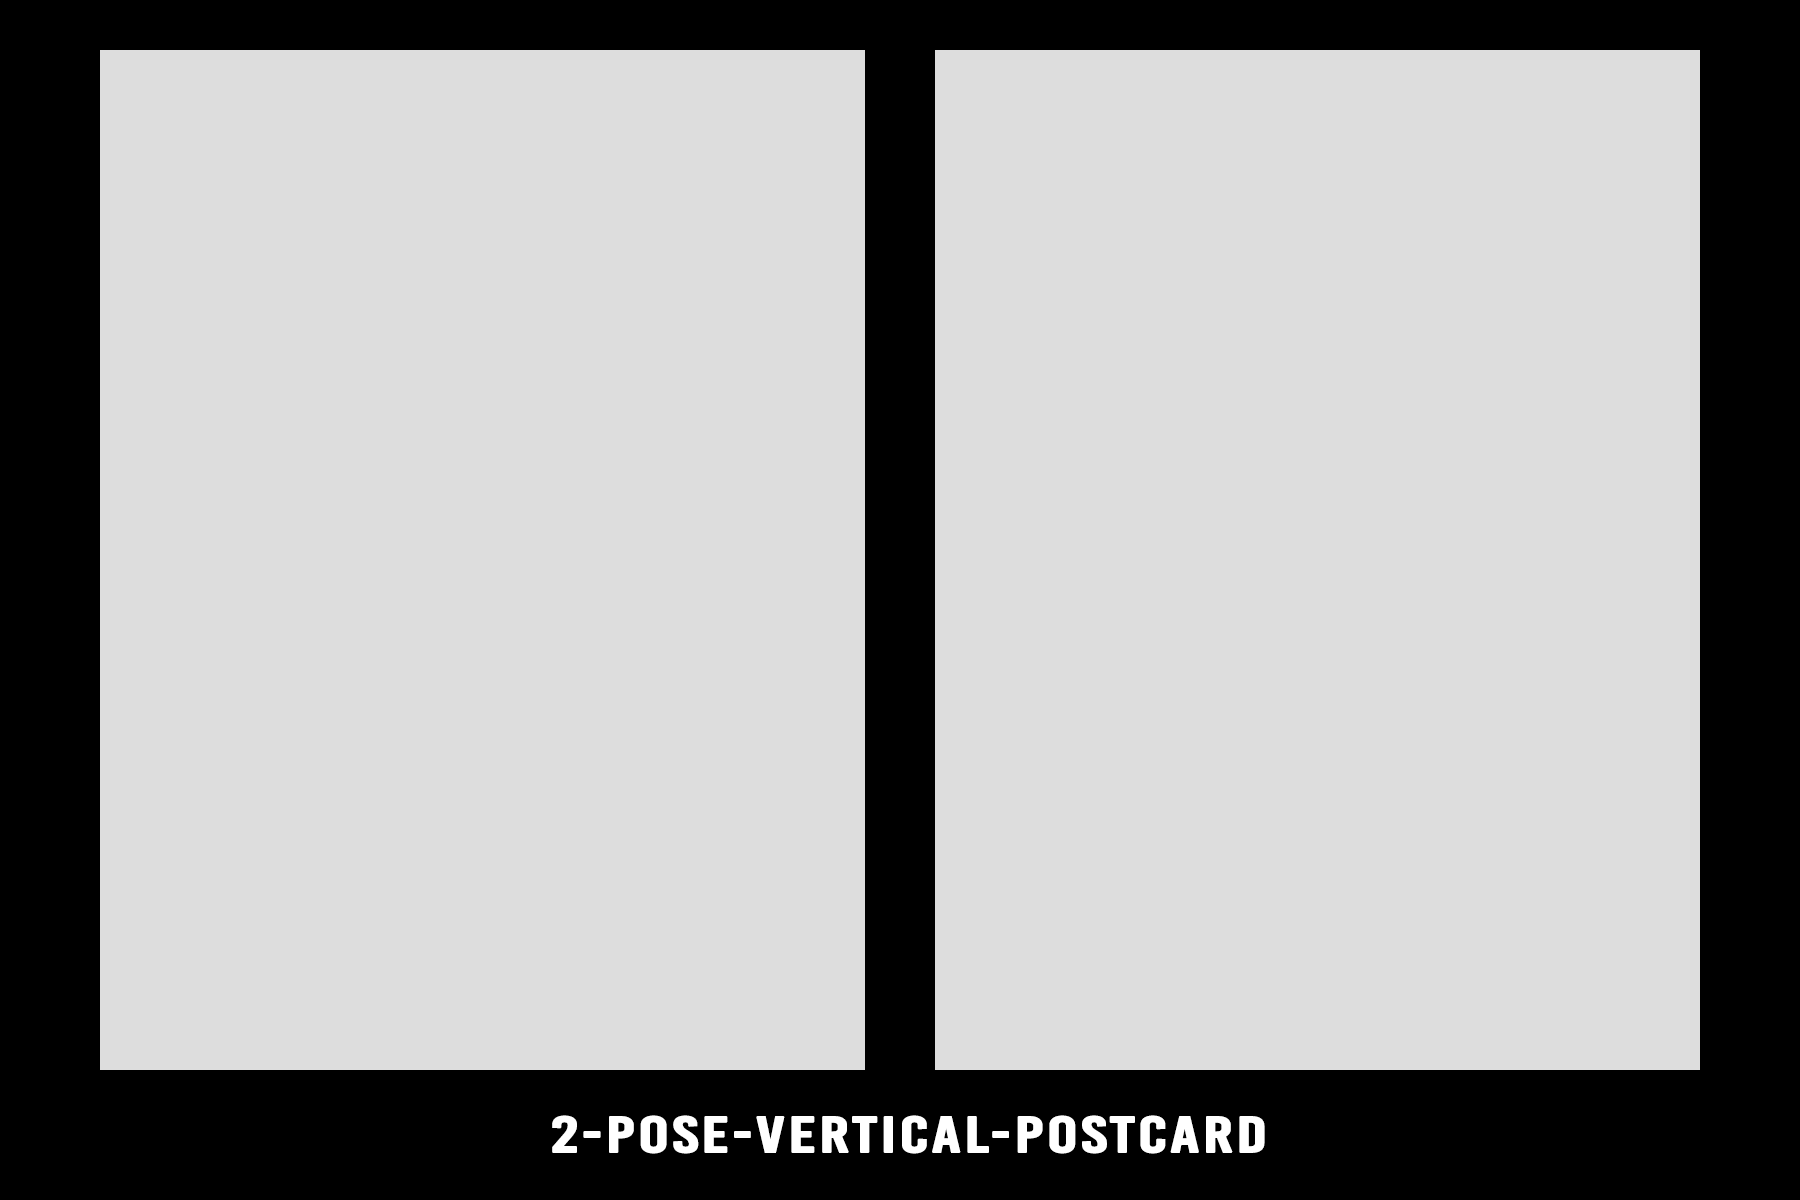 2-pose-vertical-postcard